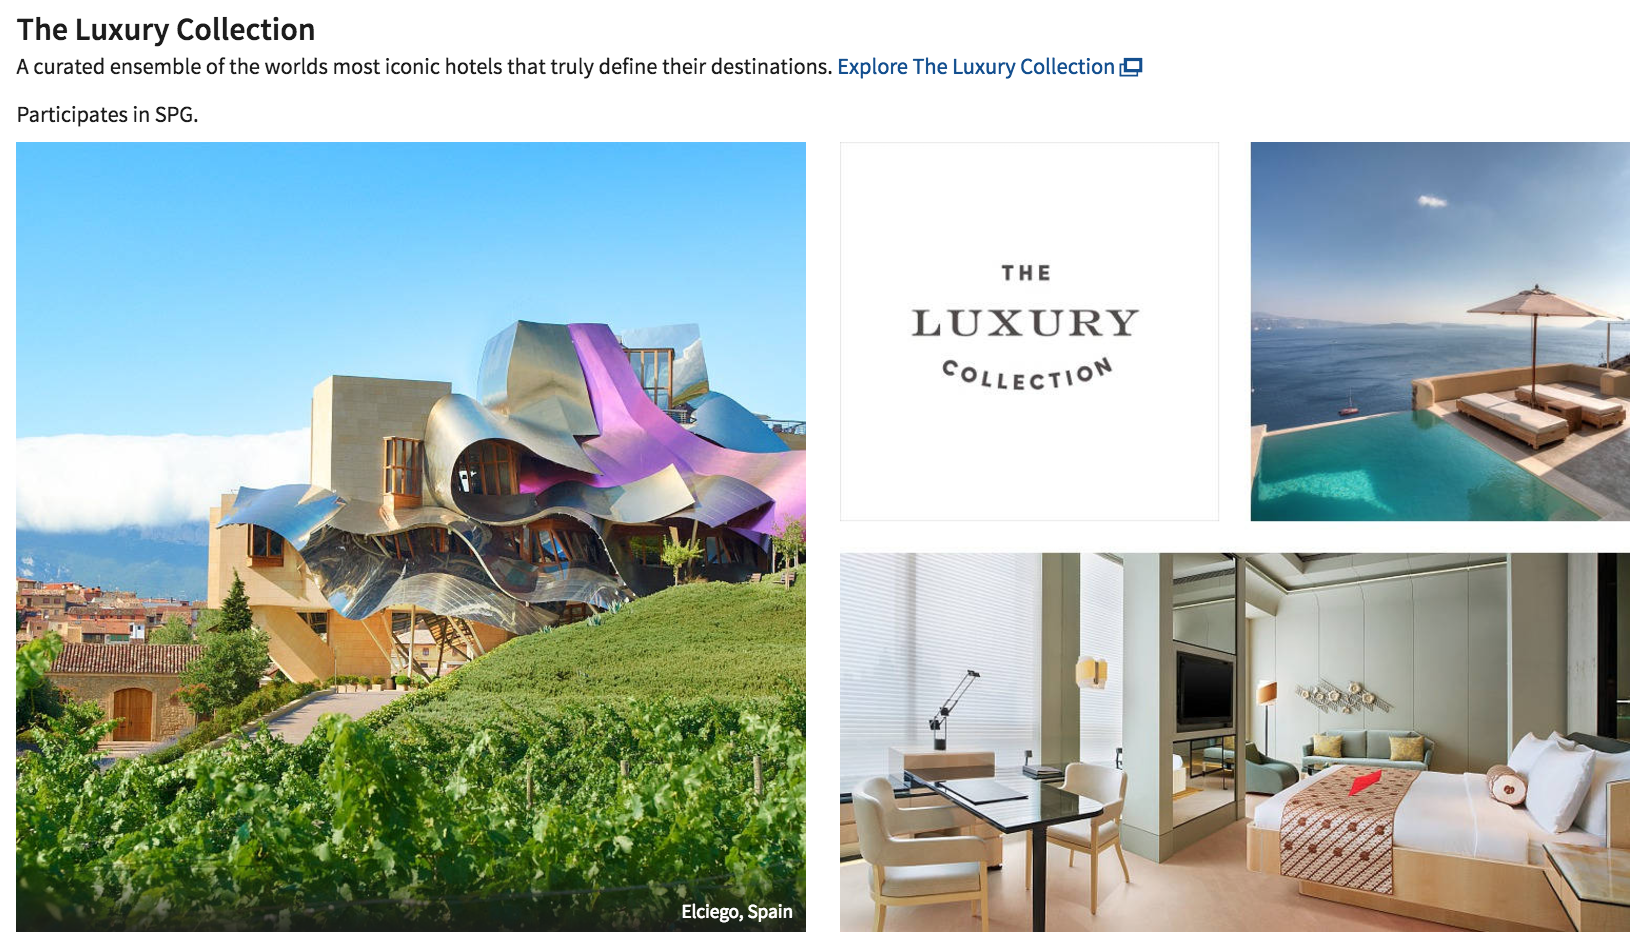 The Luxury Collection now falls under Marriott's brand since its acquisition of Starwood.